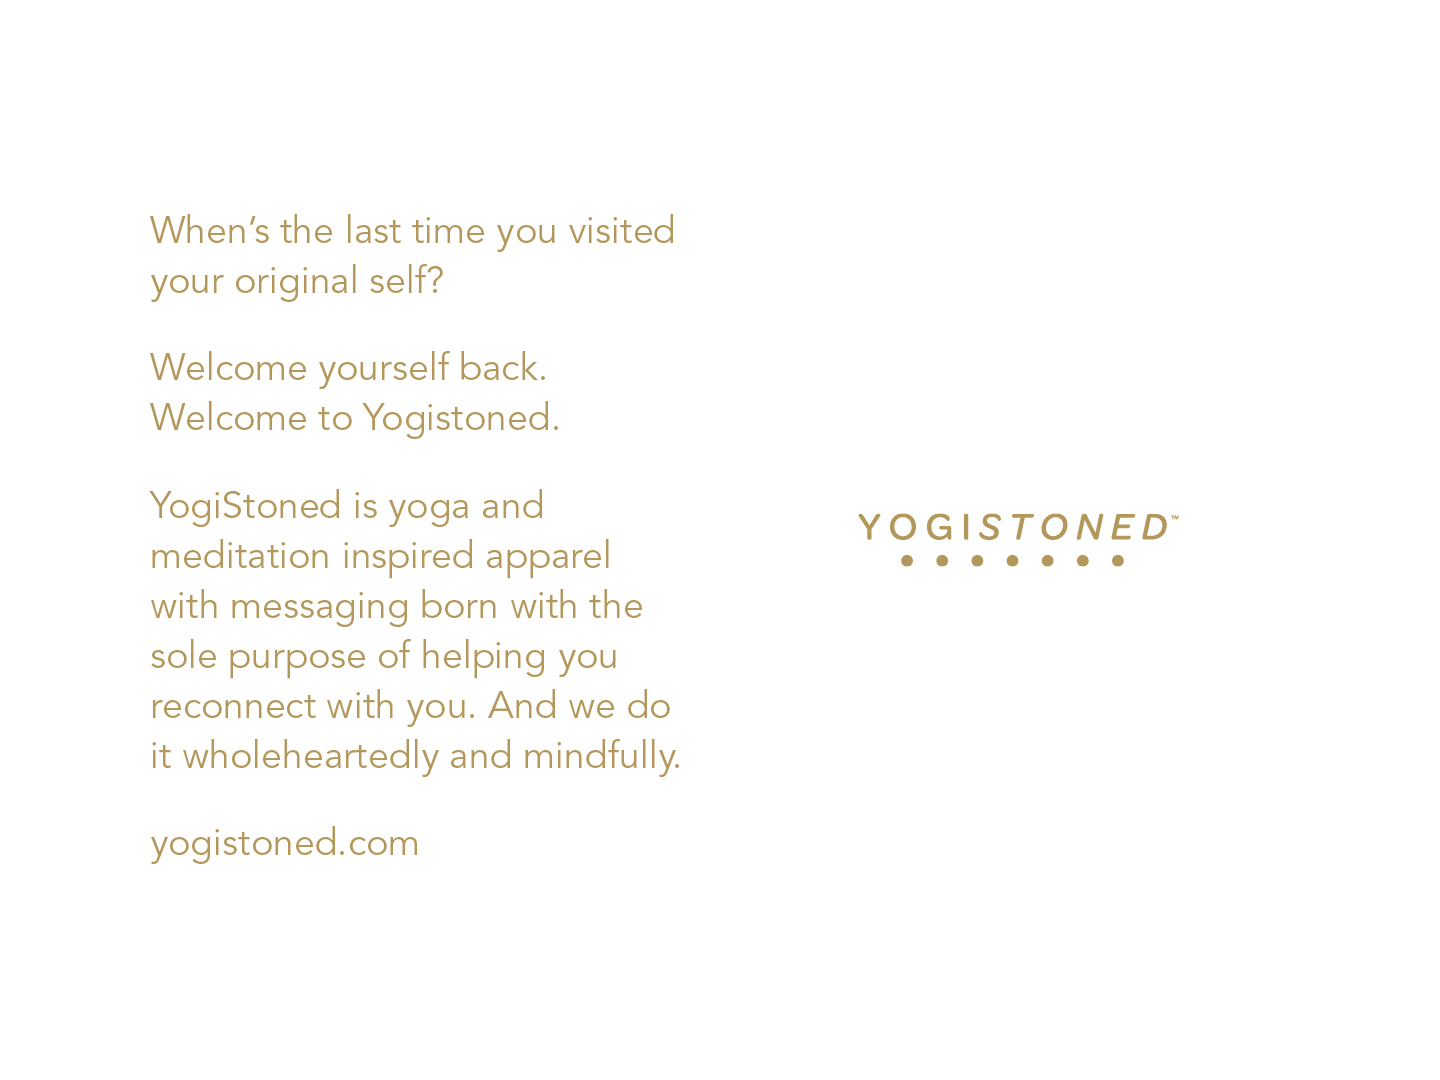 YogiStoned_LookBook_3.6x4.838.jpg